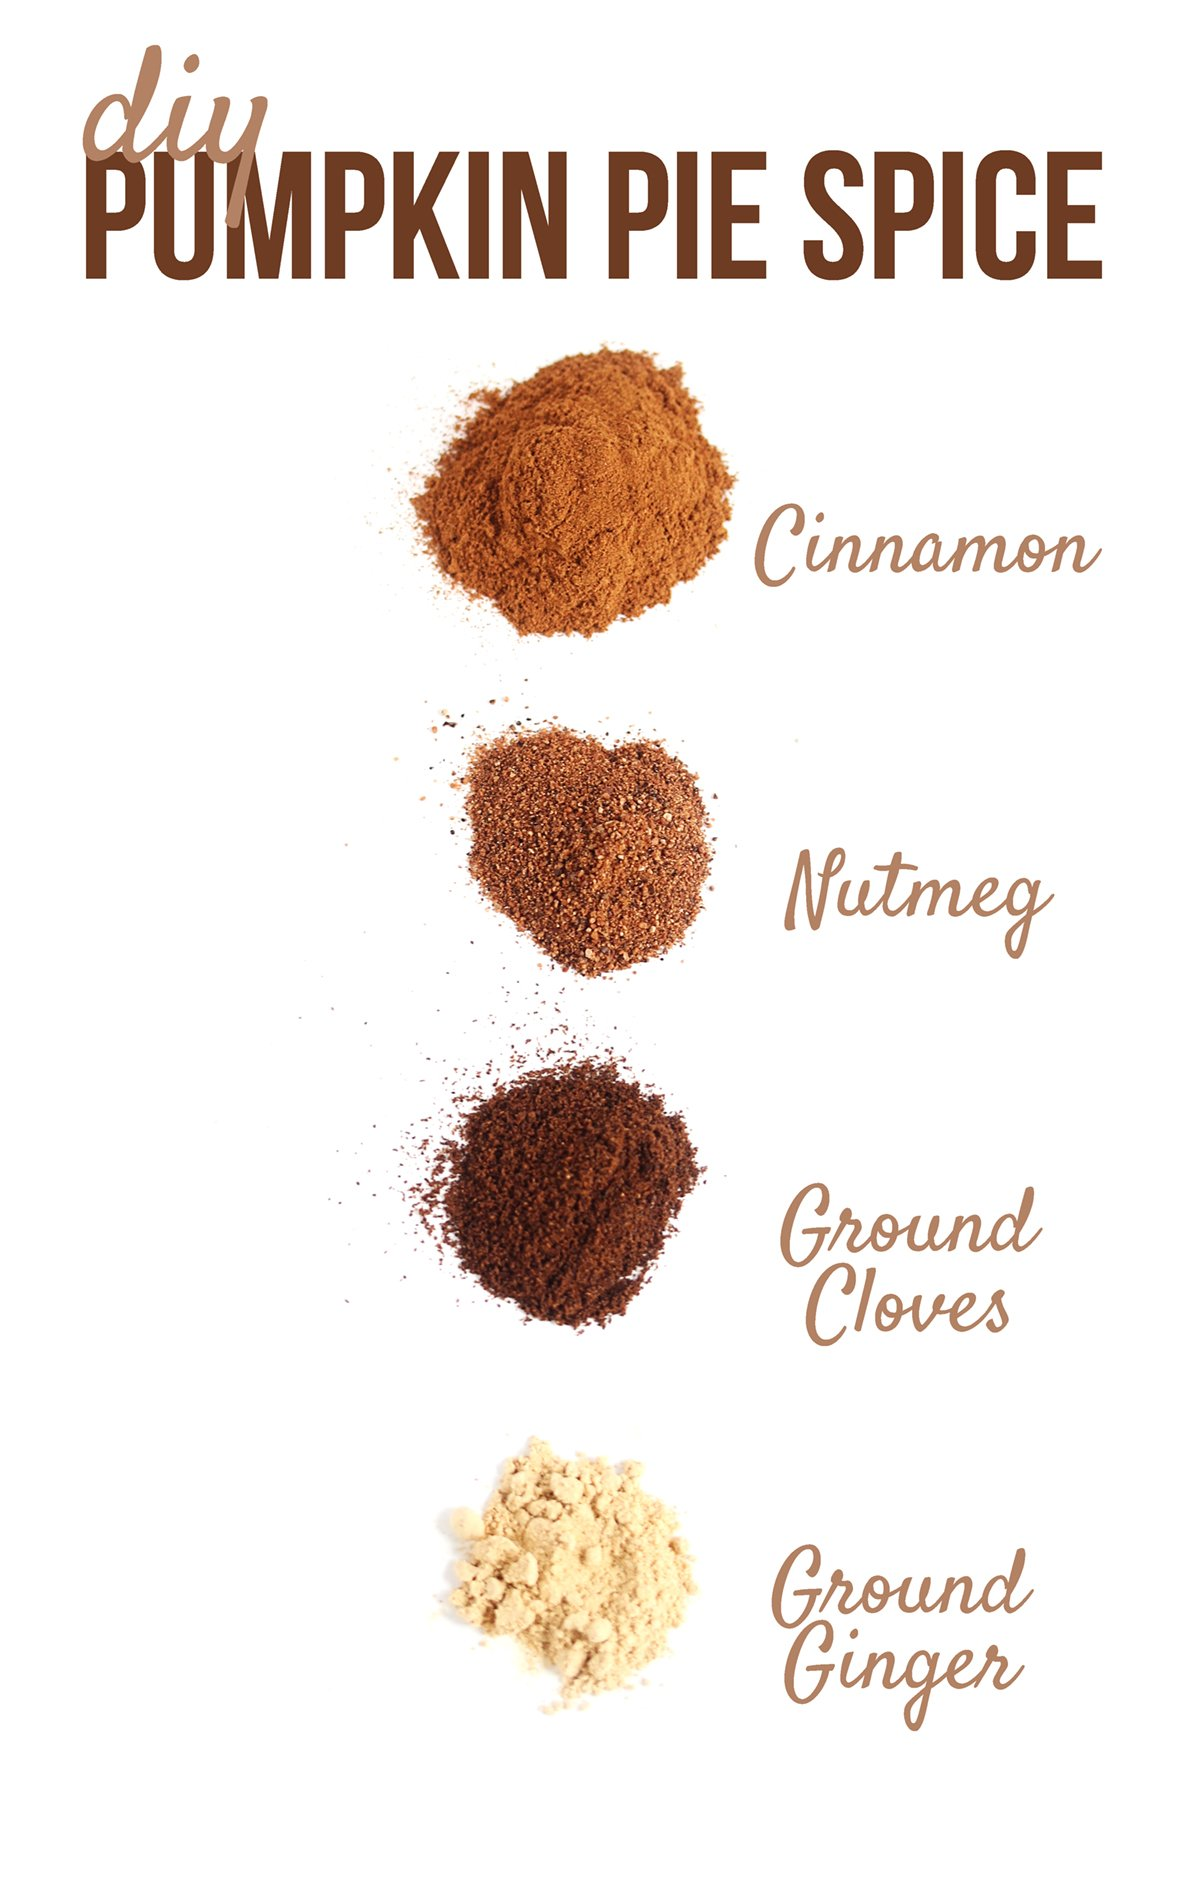 Pumpkin pie spice ingredients